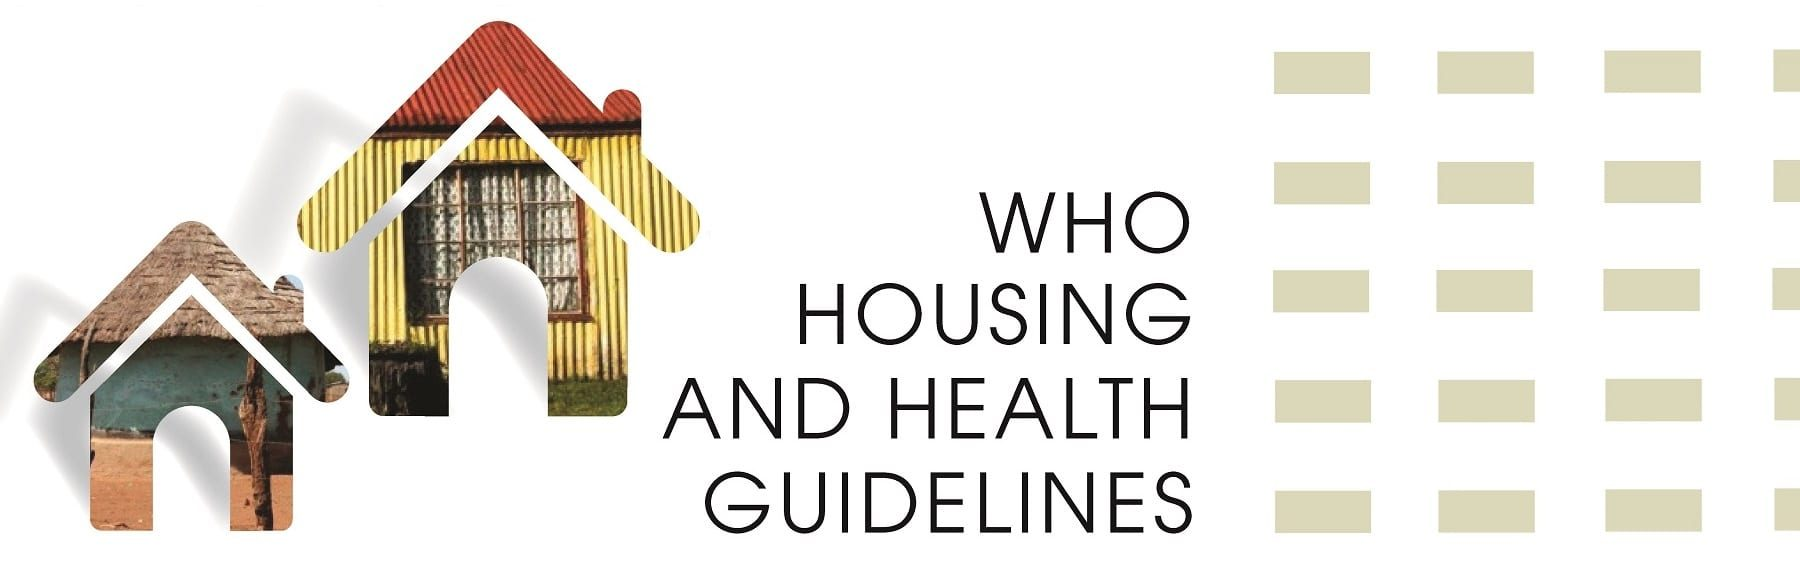 World Health Organization Releases Seminal Housing and Health Guidelines